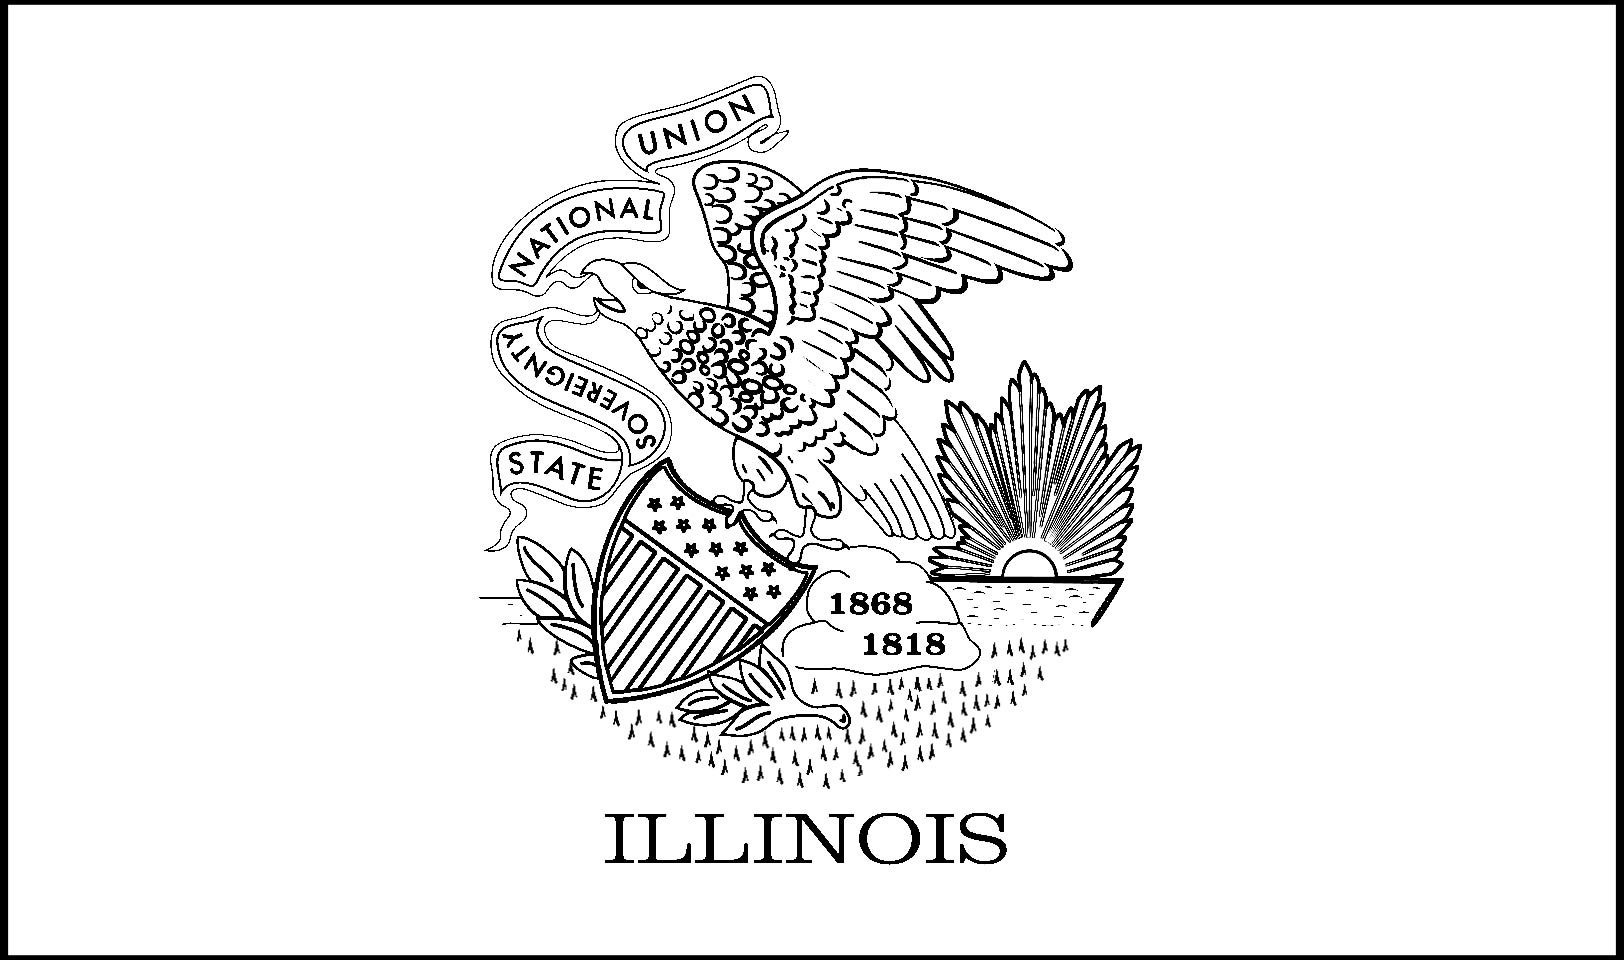 Download Illinois State Flag Line Drawings JPG